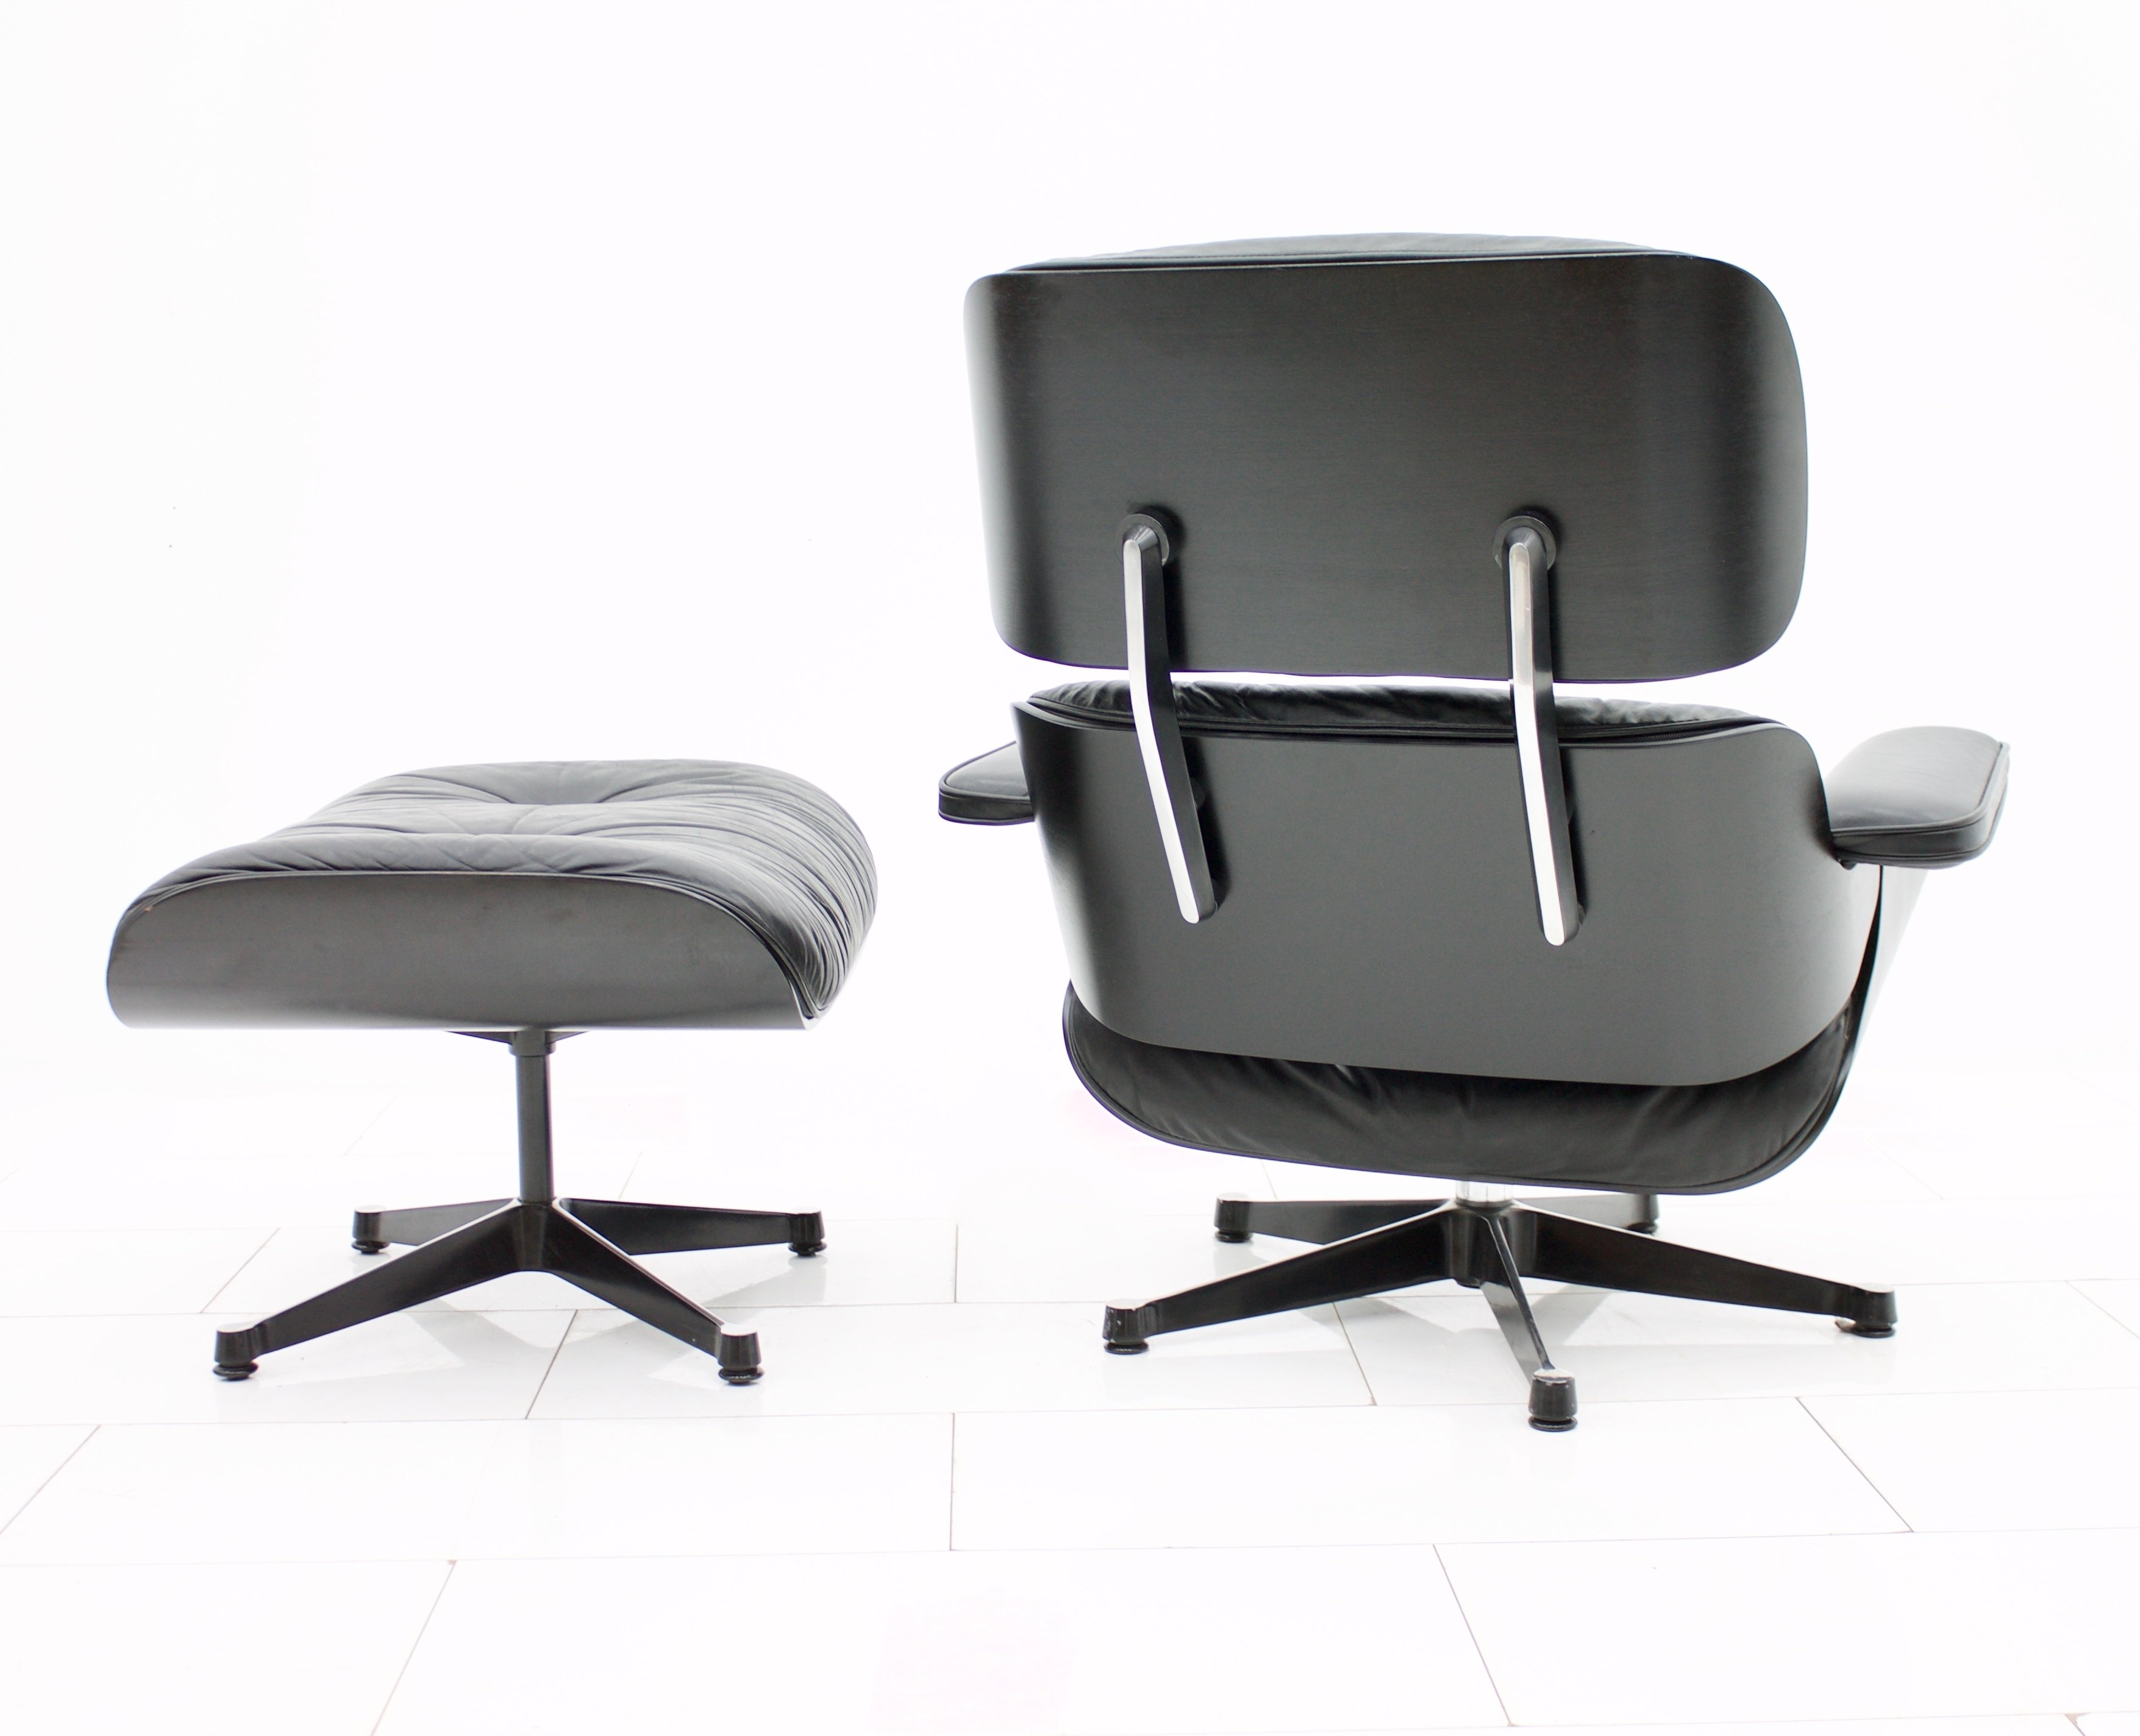 Astonishing Black Lounge Chair Ottoman By Charles Ray Eames For Short Links Chair Design For Home Short Linksinfo